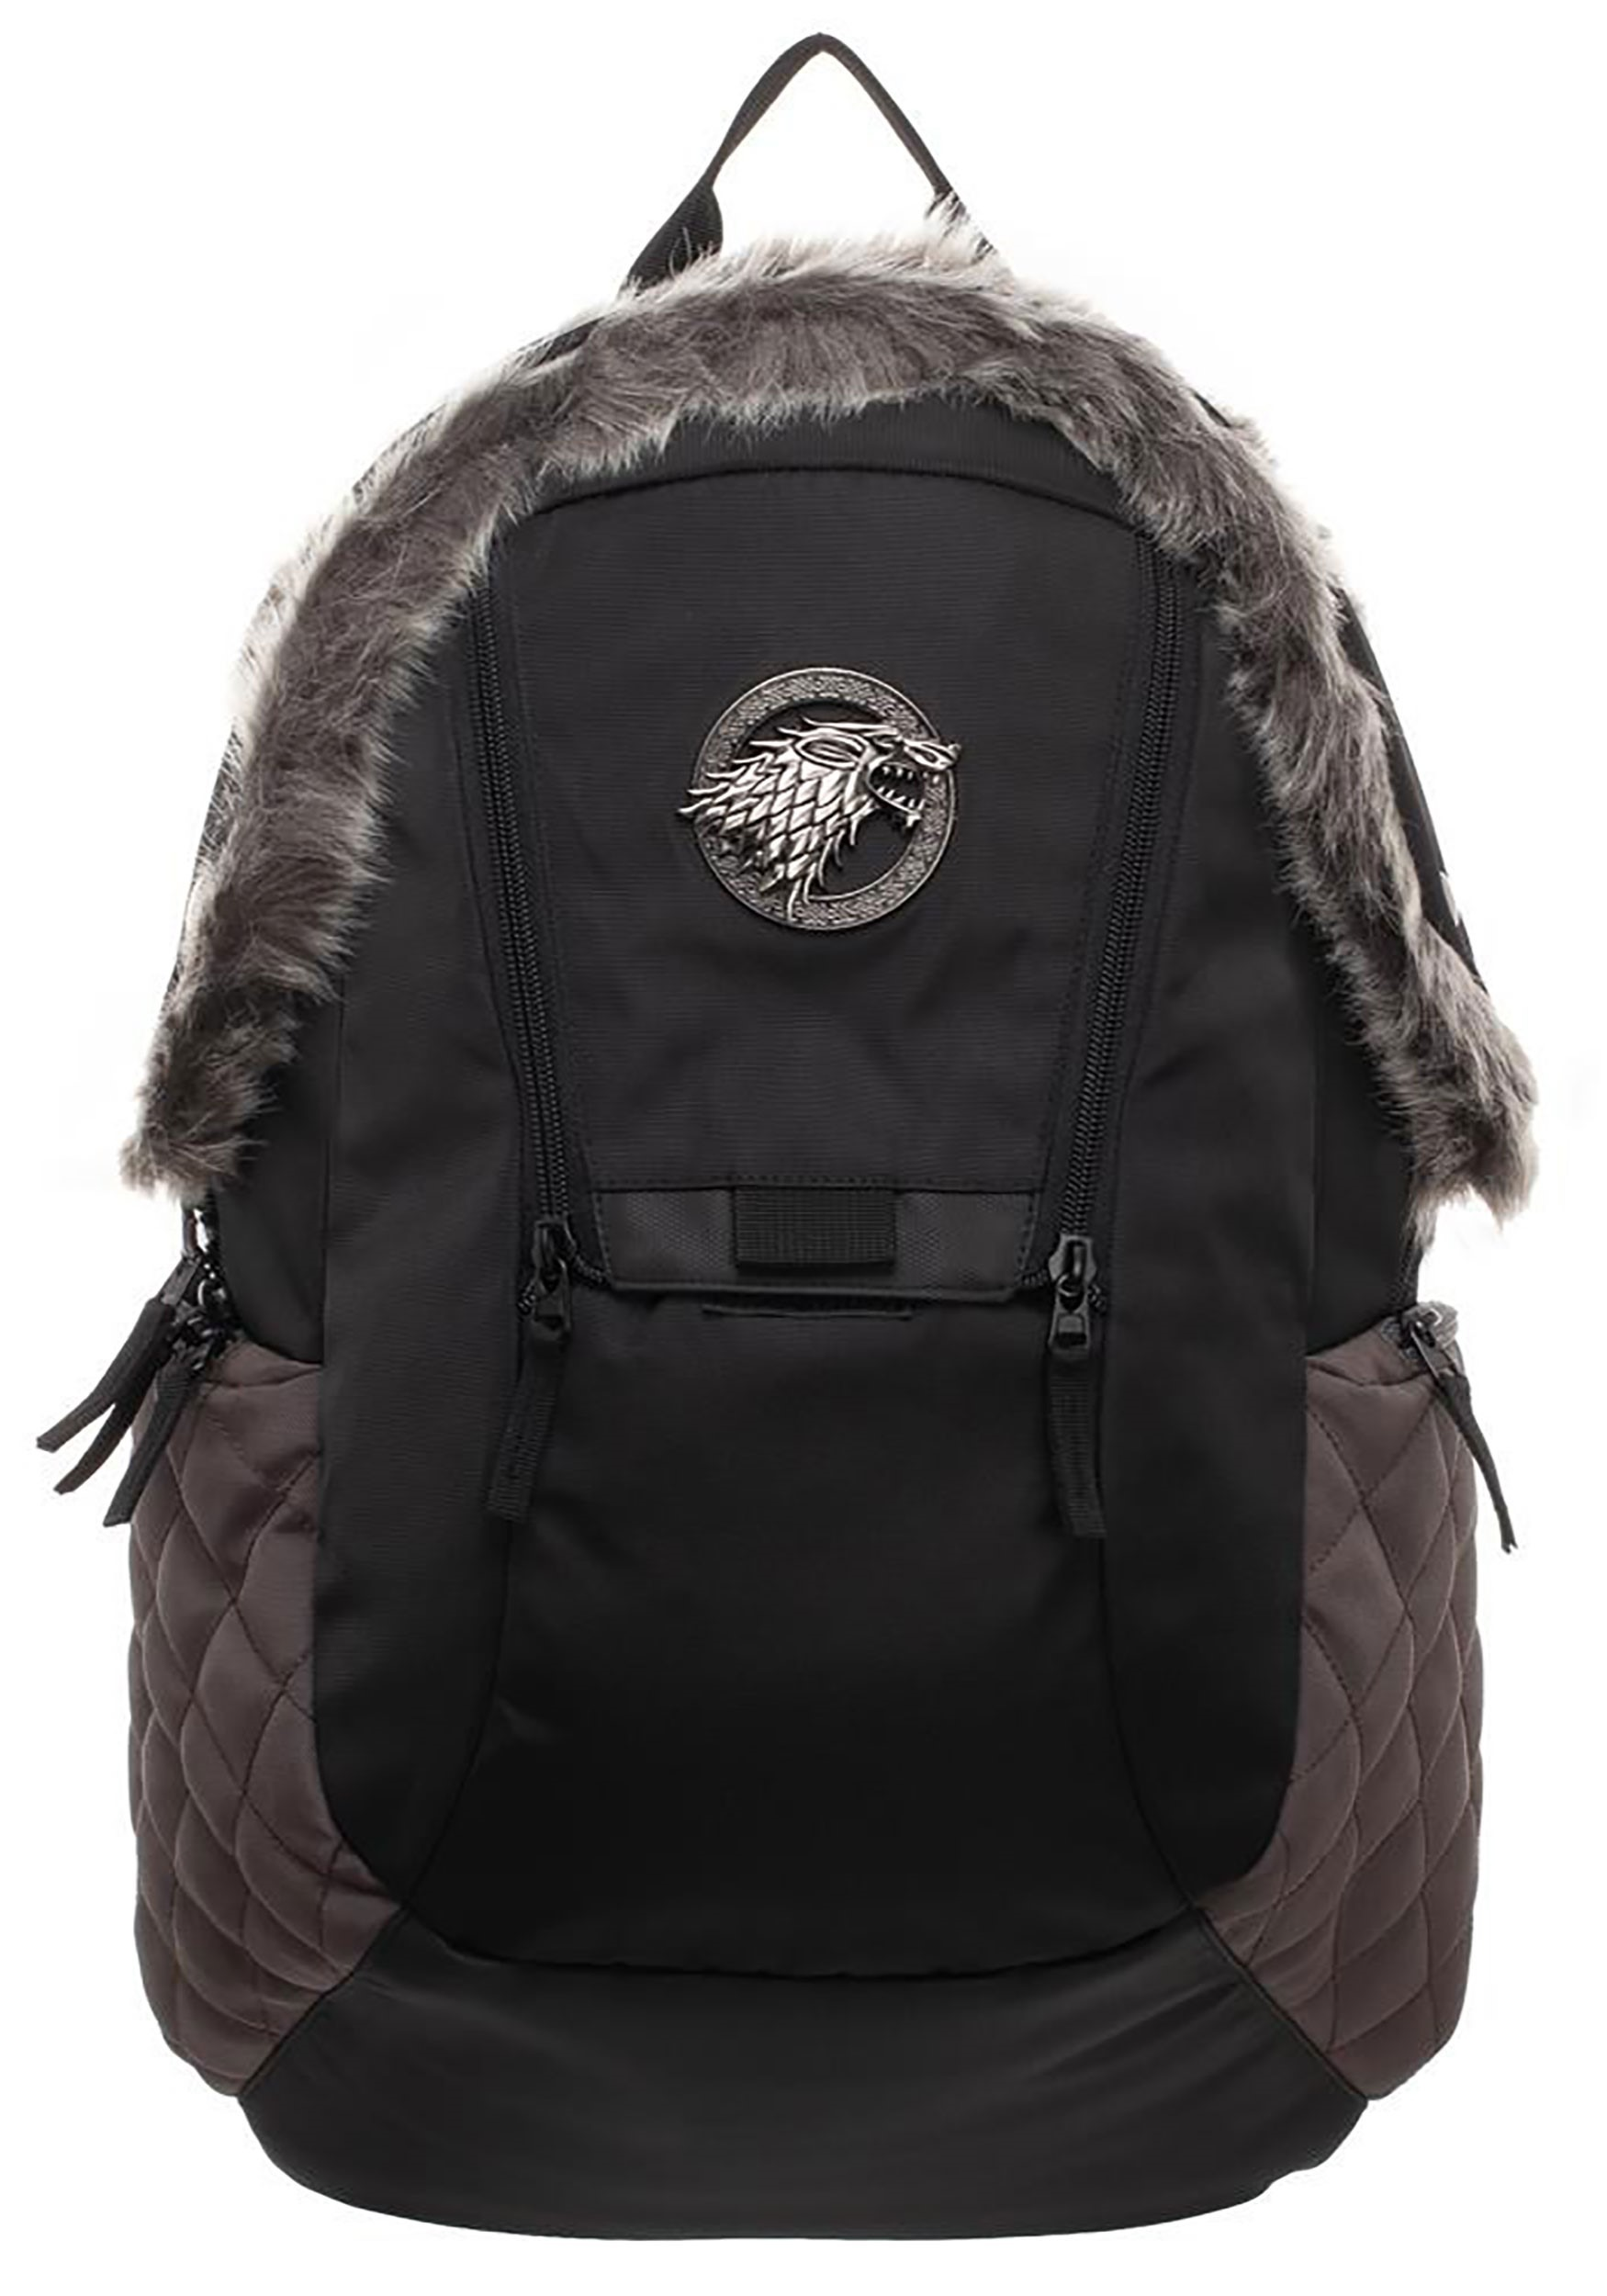 Stark Inspired Backpack from Game of Thrones